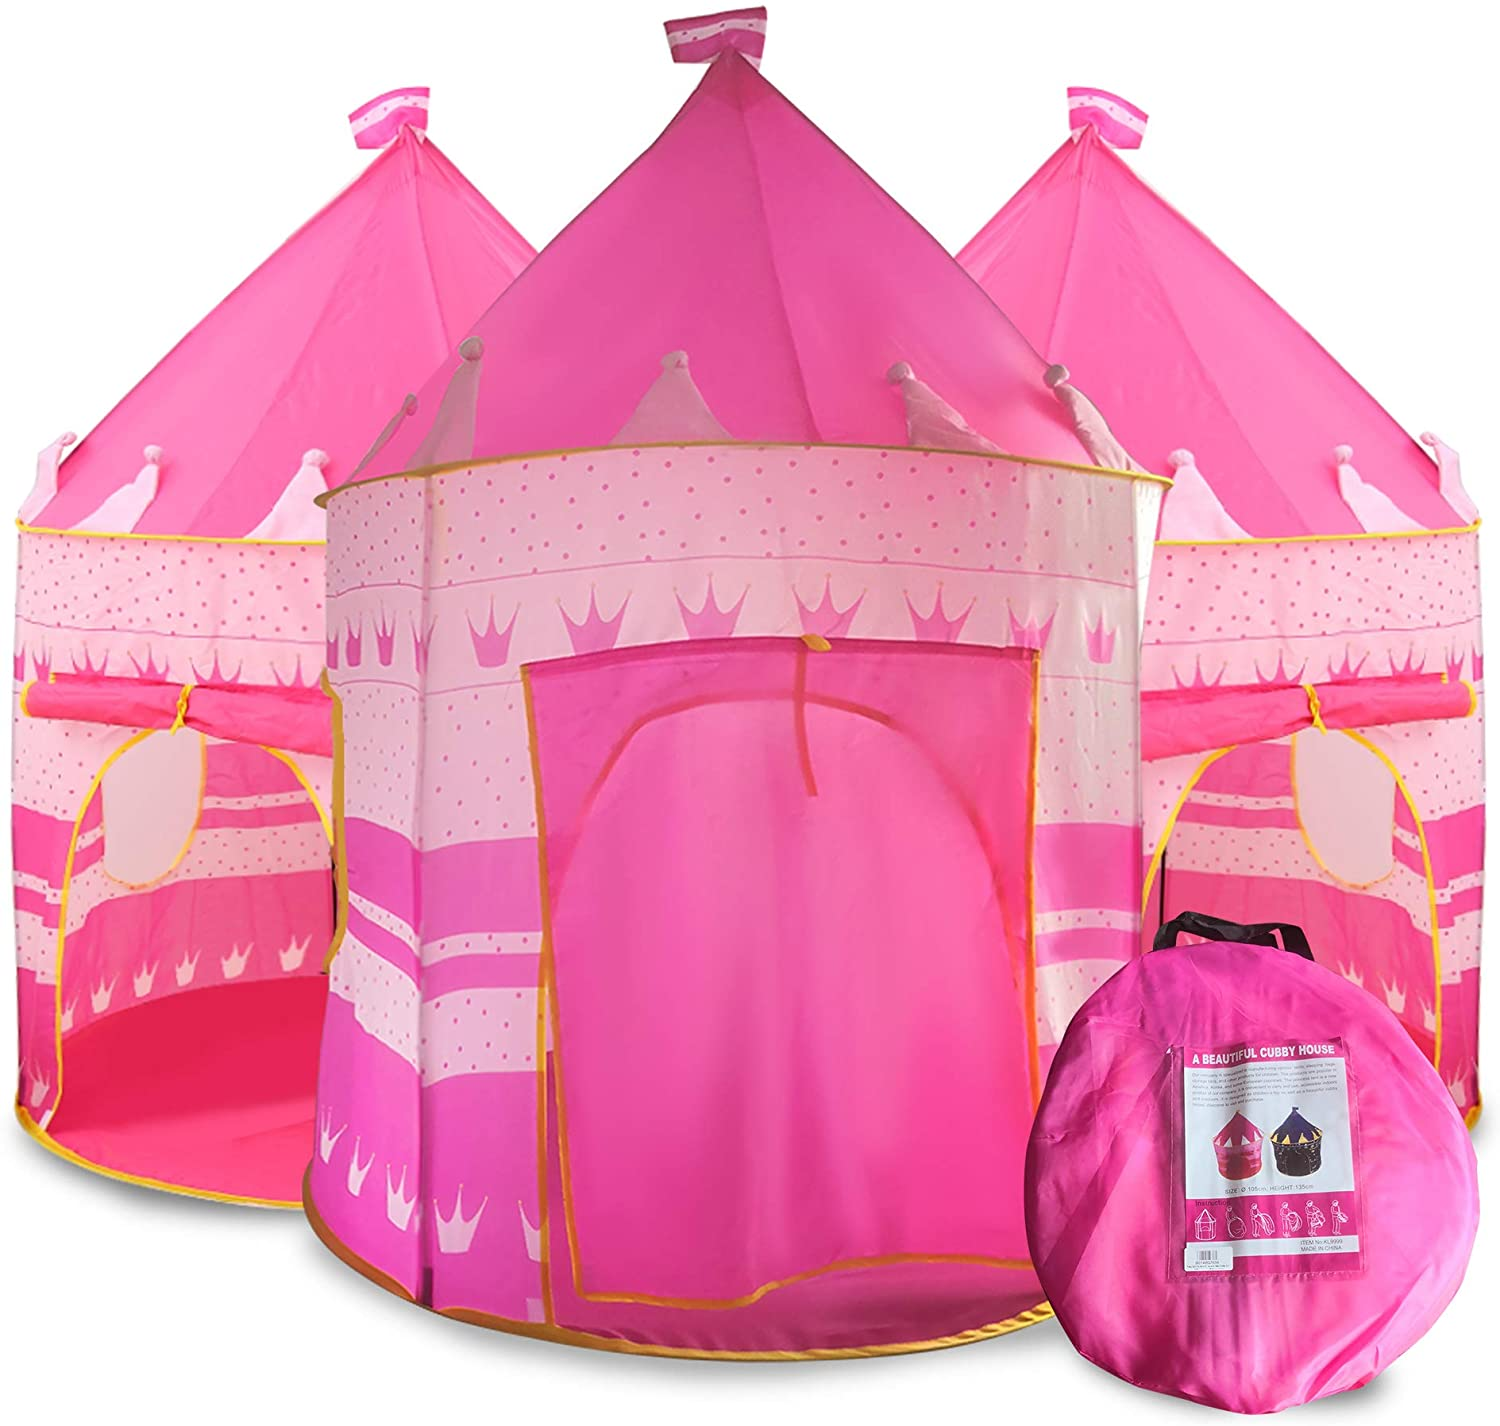 Princess Castle Play Tent for Kids, Princess Castle Dollhouse That conveniently Folds in to a Carrying Case, Perfect Foldable Pop Up Pink Childrens Play Tent/House Toy for Indoor & Outdoor Use